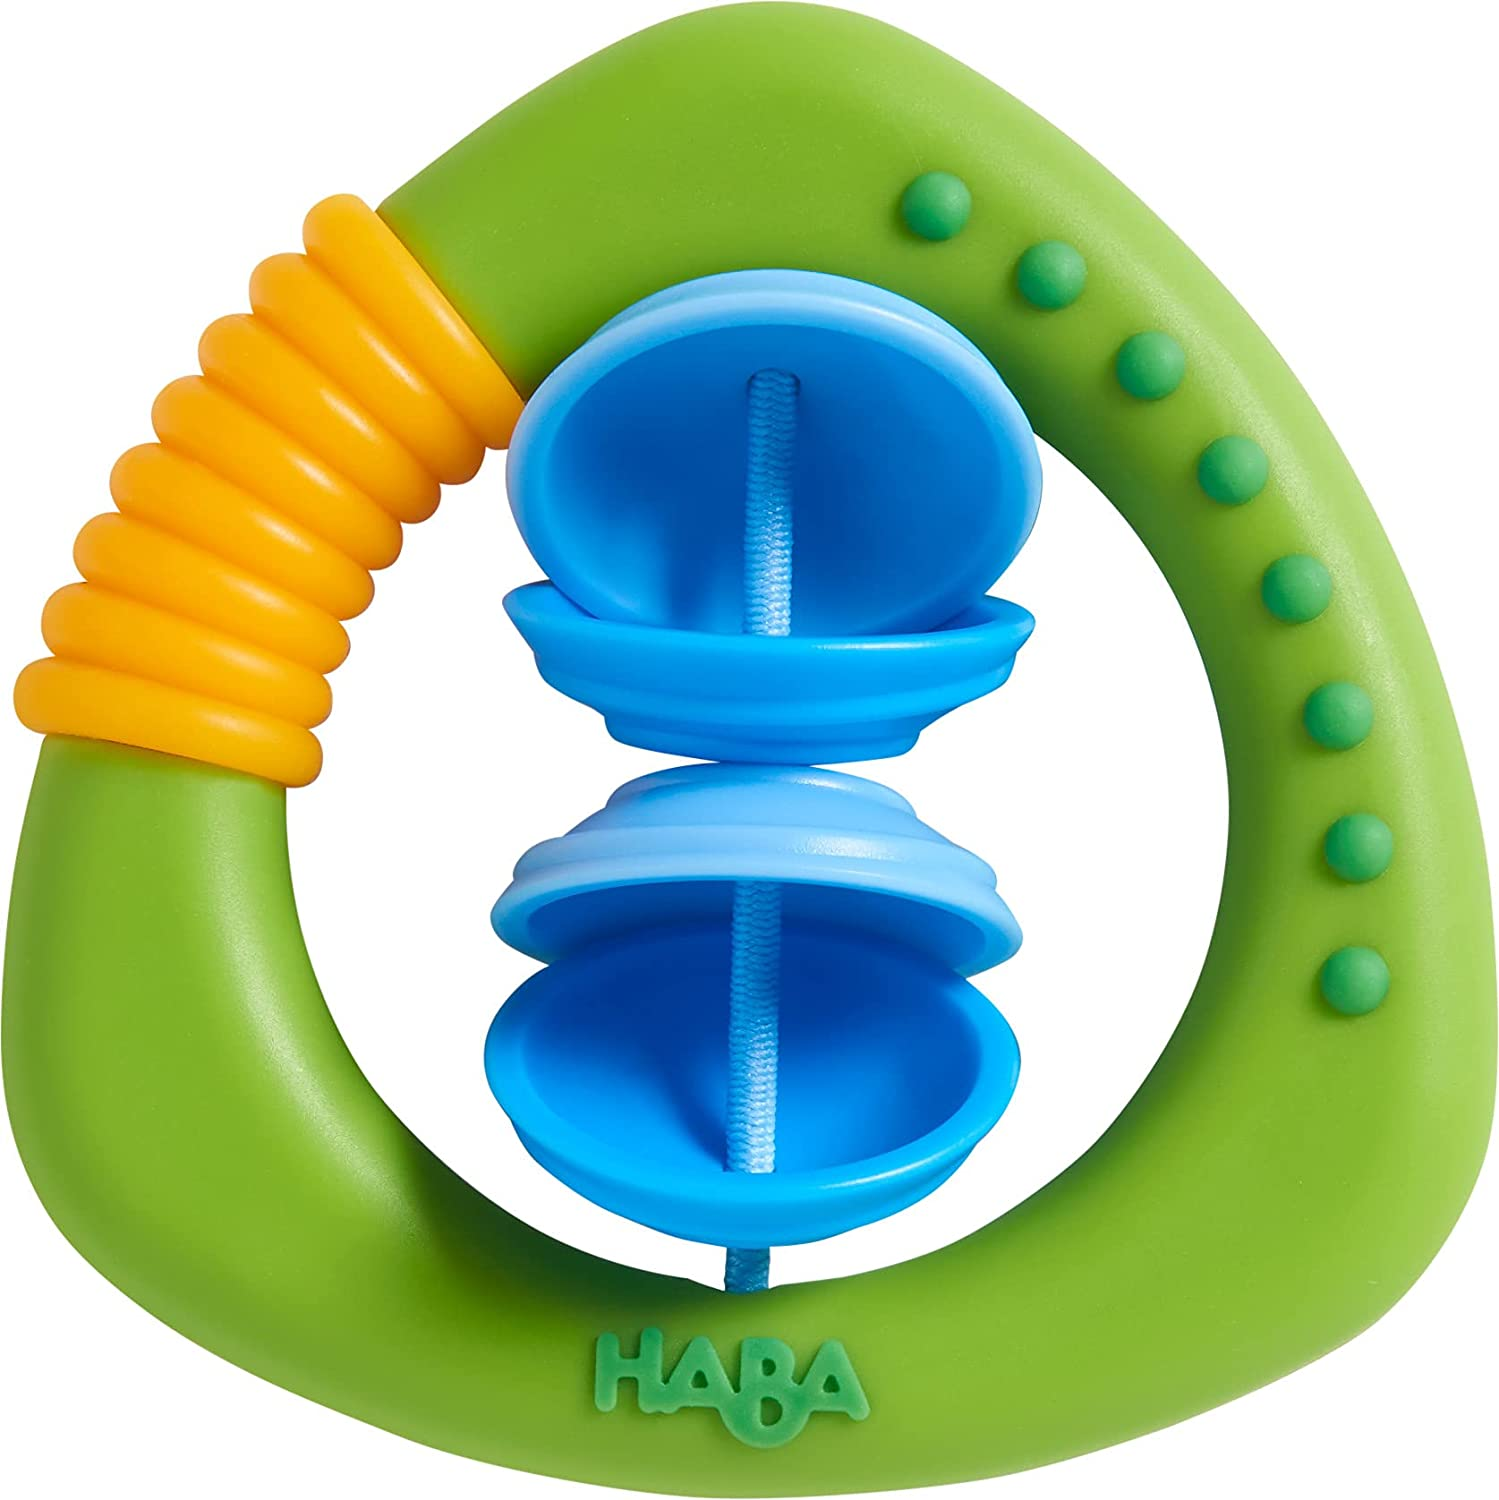 HABA Clutching Toy Cymbals (Silicone Plastic)